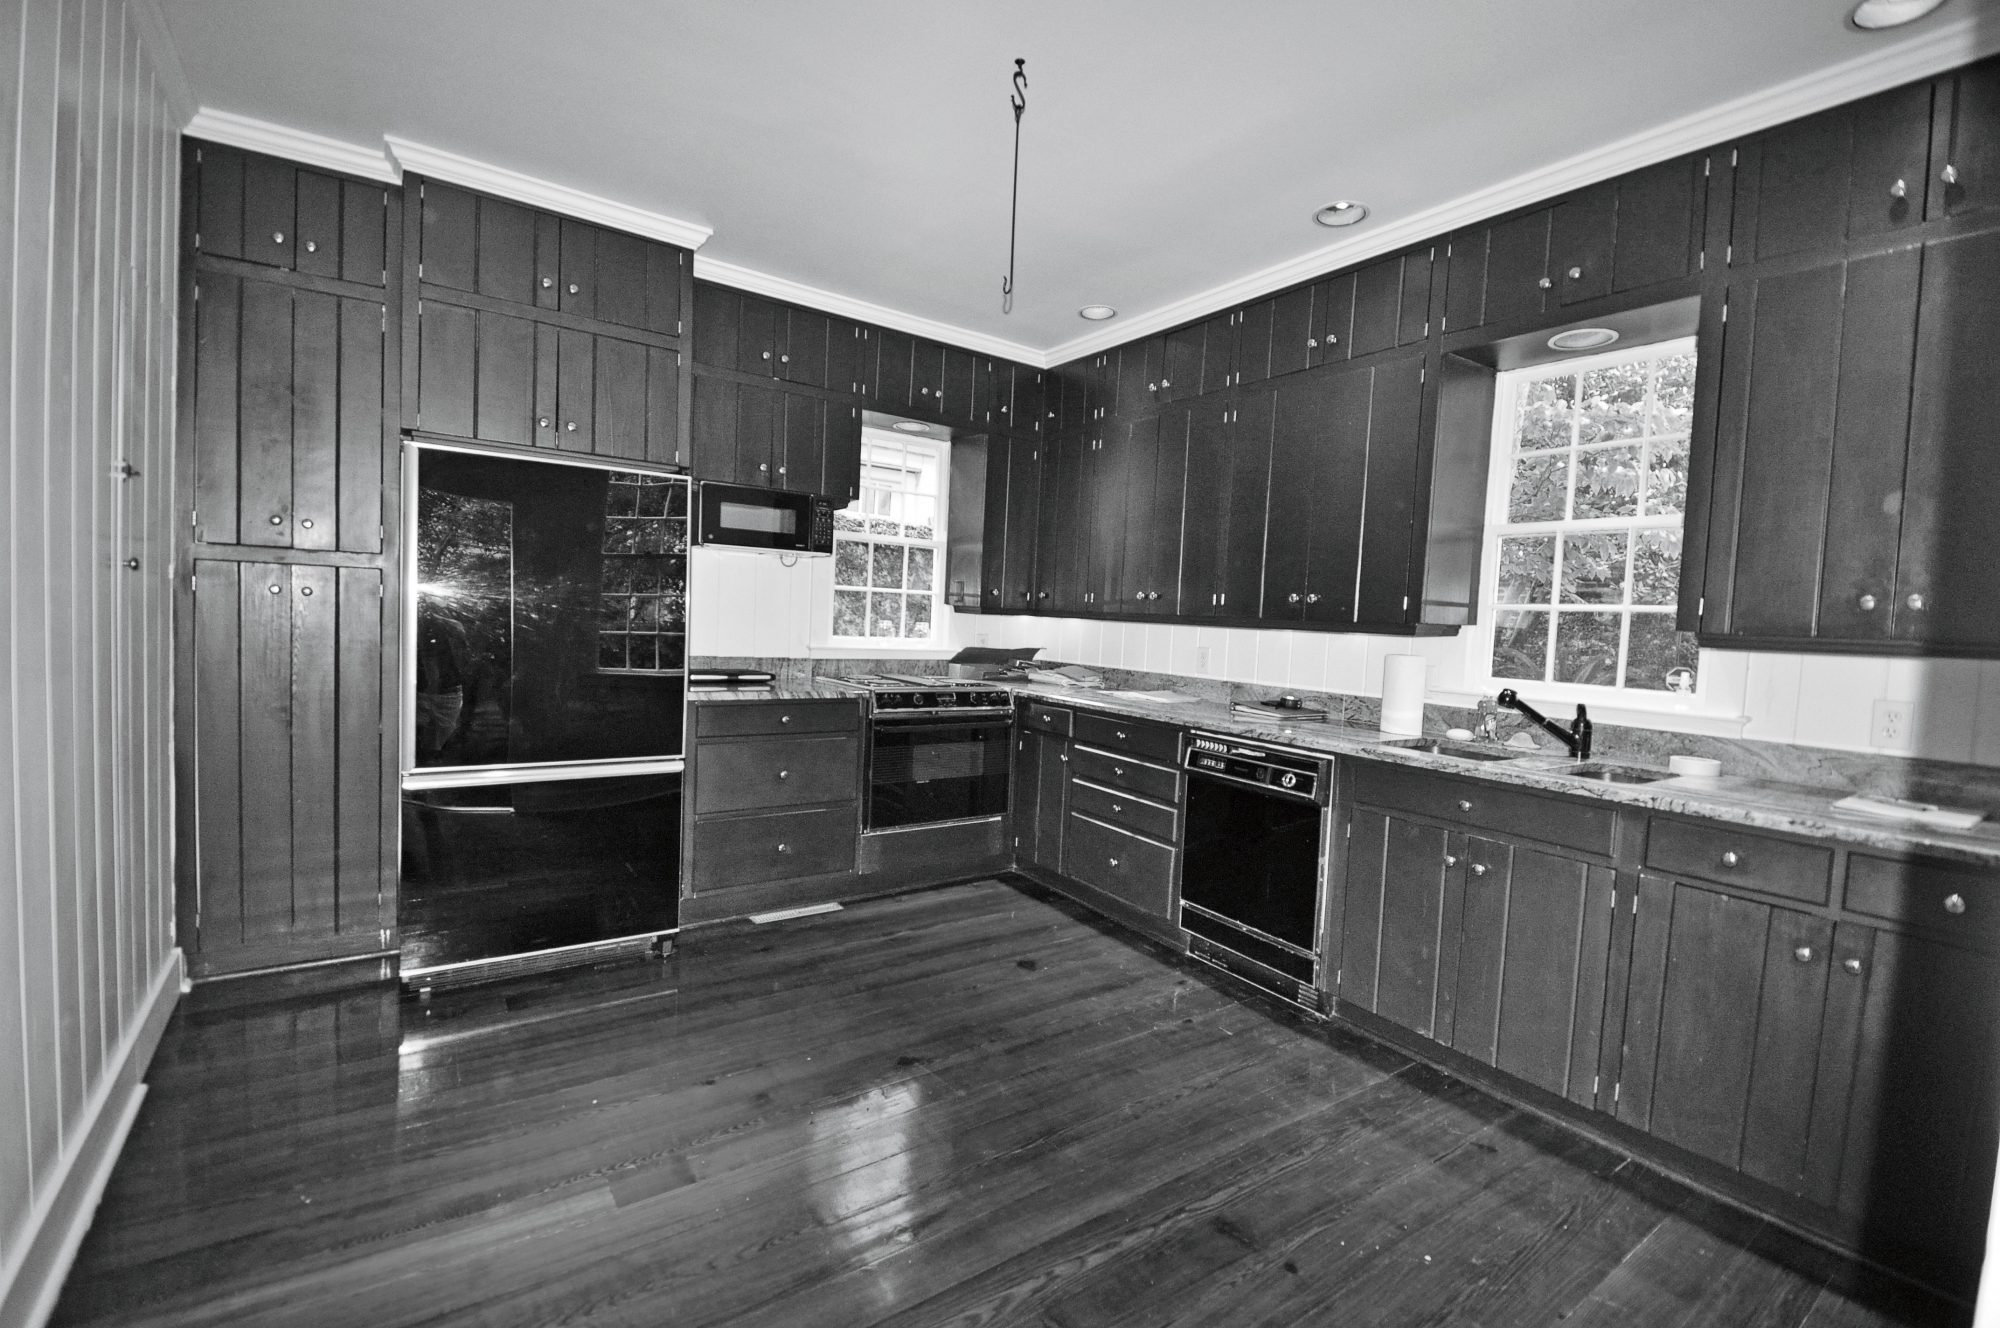 The Dark and Dated Kitchen